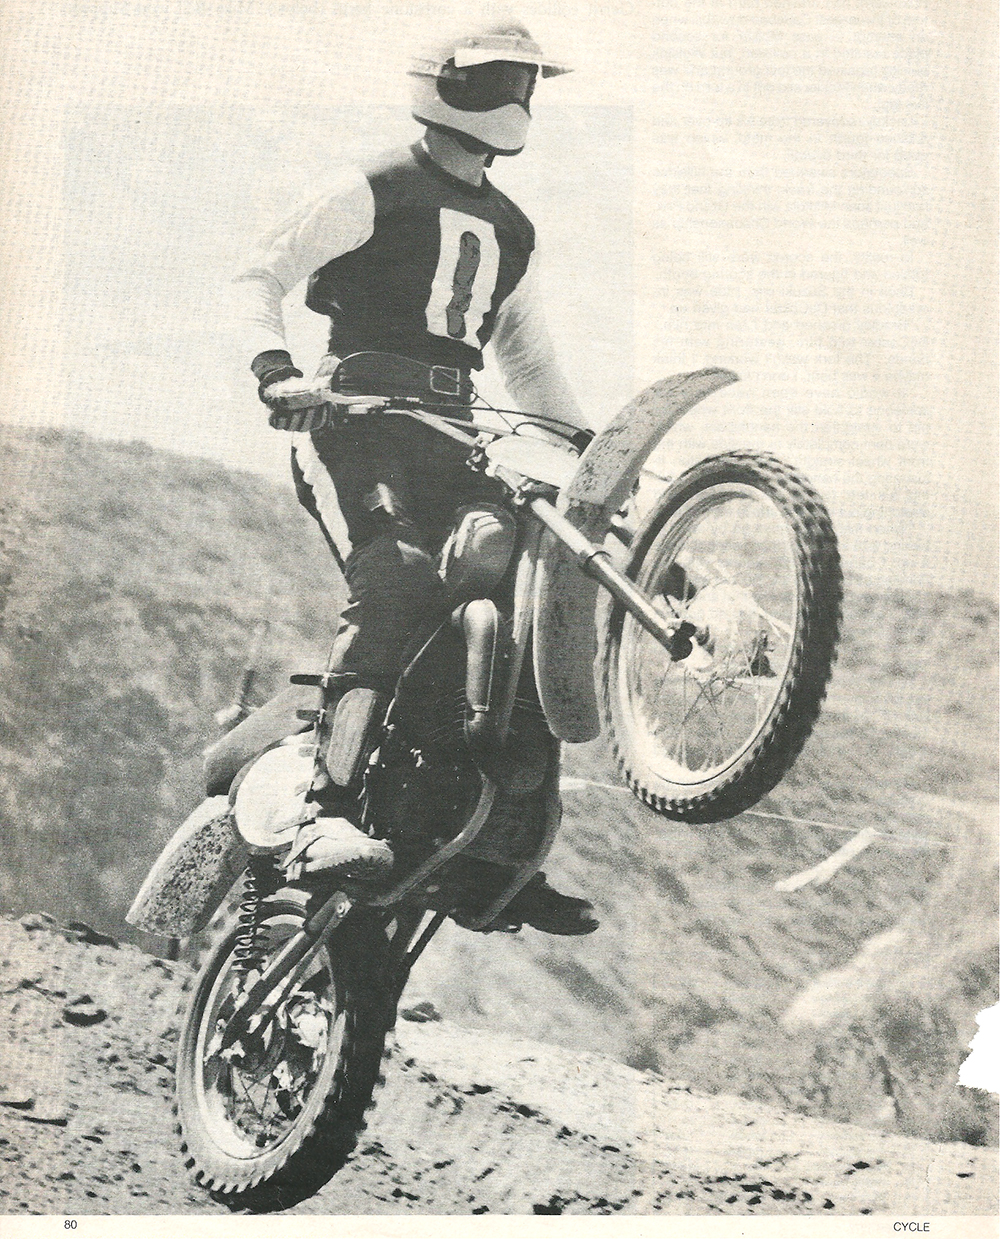 1977 Harley Davidson 250 MX road test 1.jpg